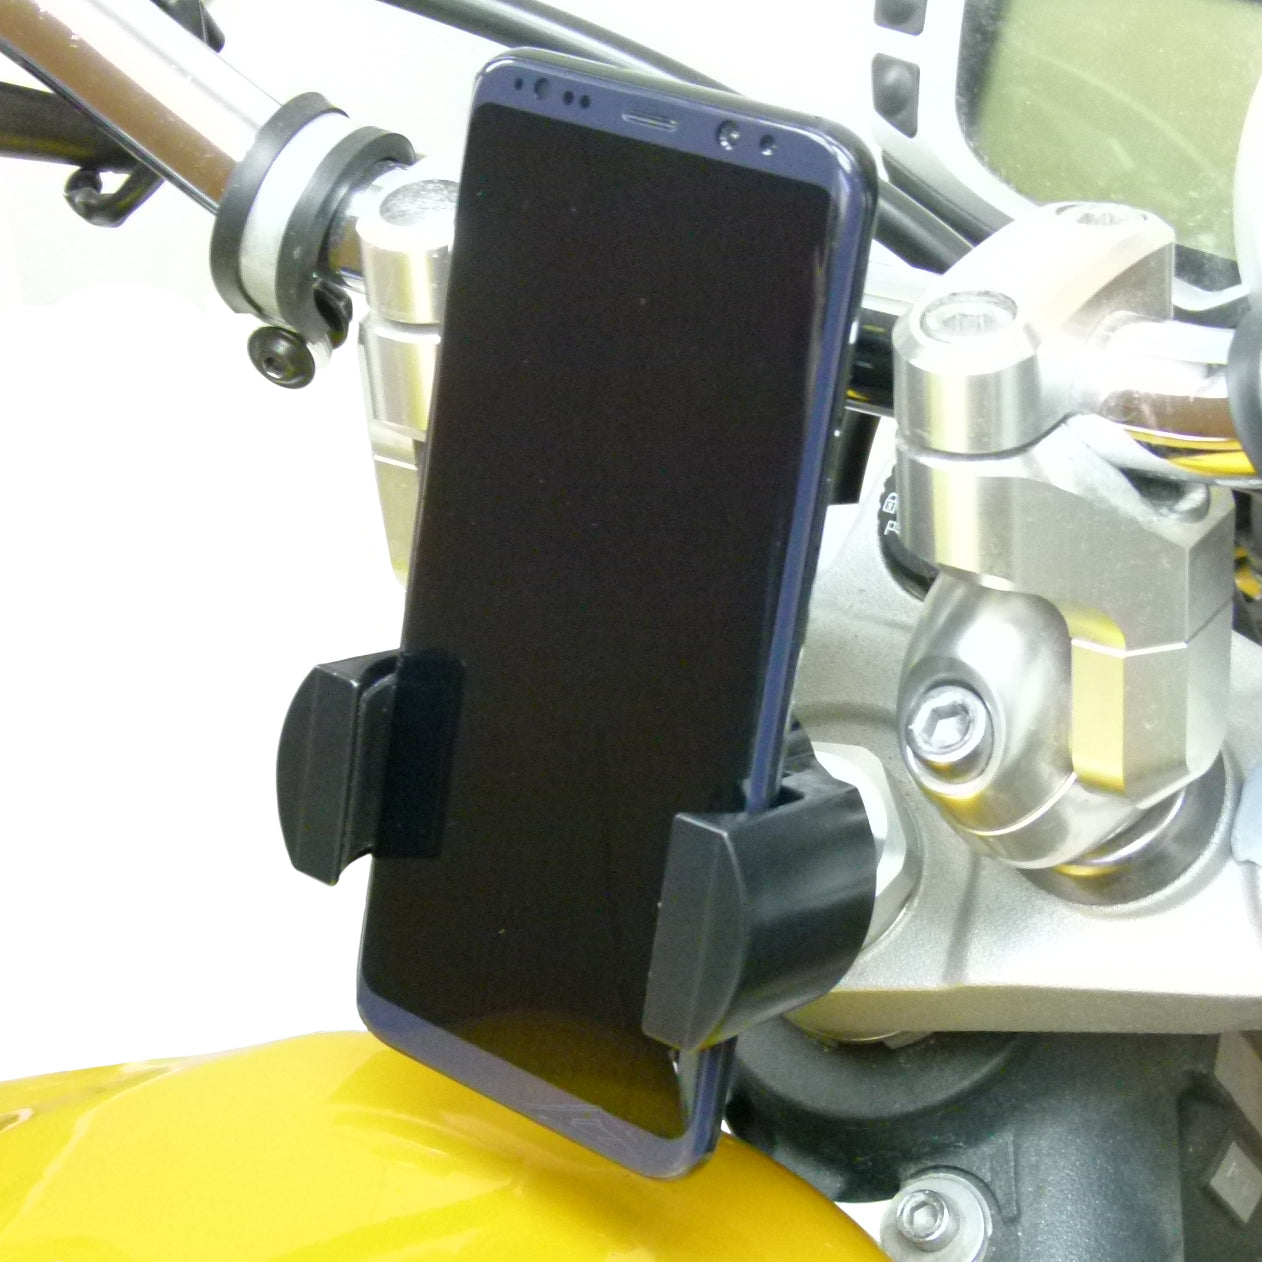 Honda CBR600F4 - F4i (1999-2006) 19mm Stem Motorbike Mount For Samsung Galaxy S10 (sku 44346)